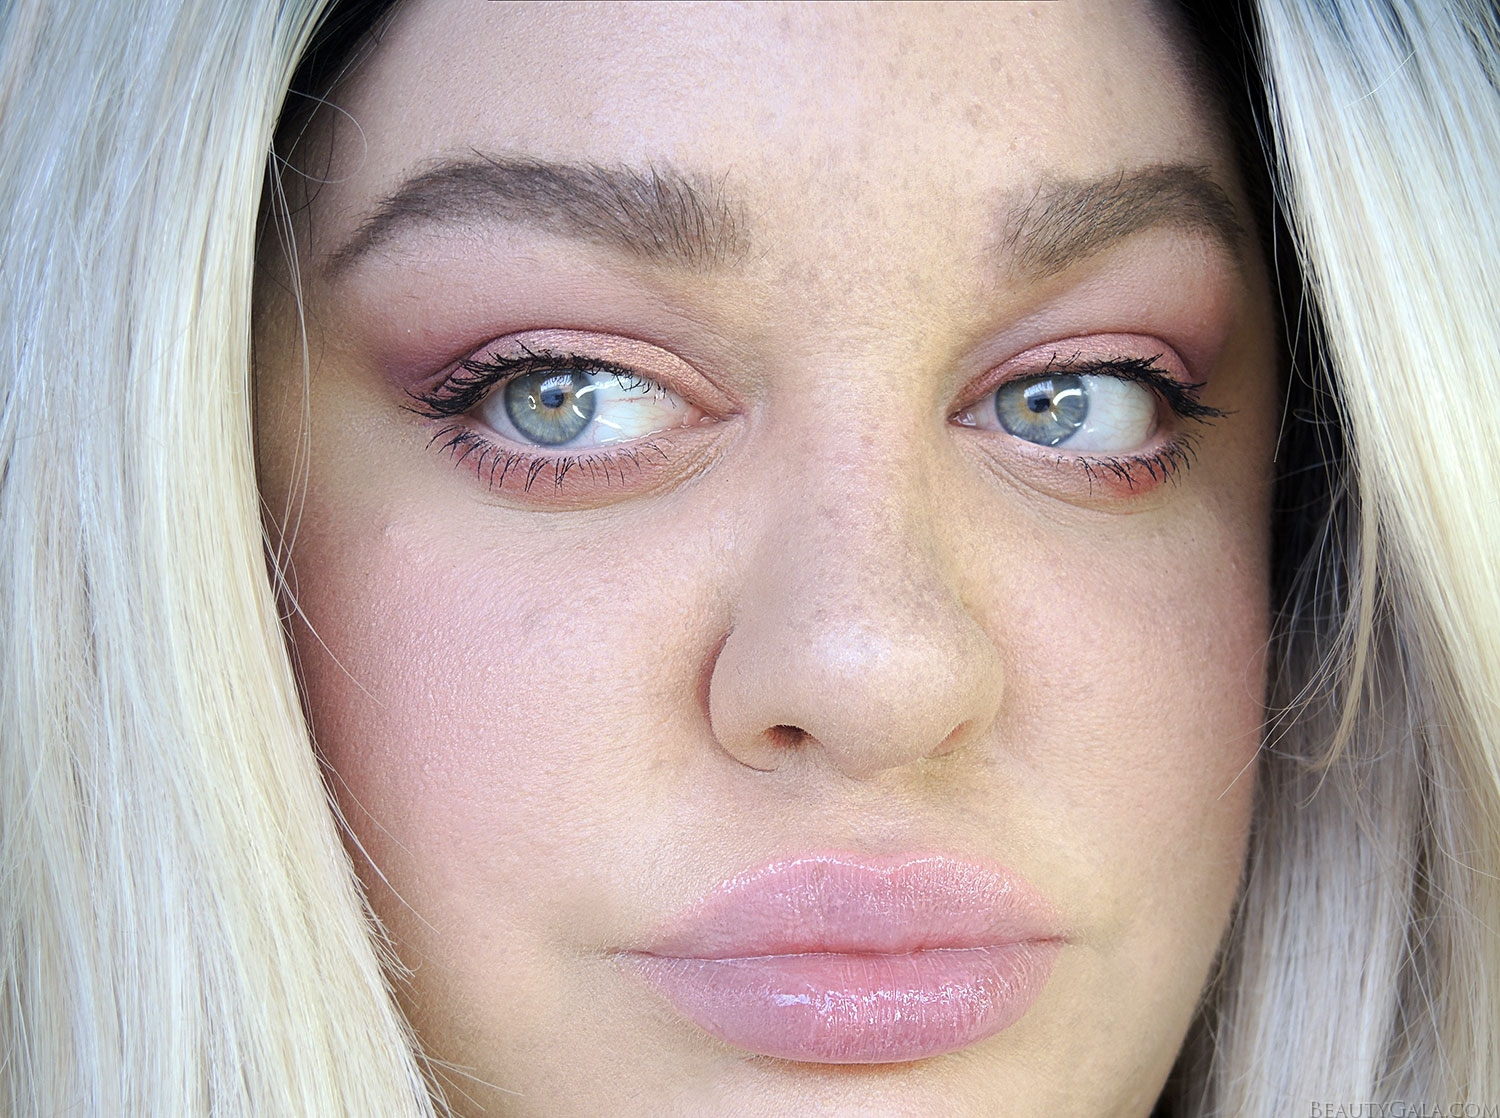 maybelline blushed avenue, blushed avenue palette, maybelline the city mini palette, faux freckles, dior lip glow, benefit brows